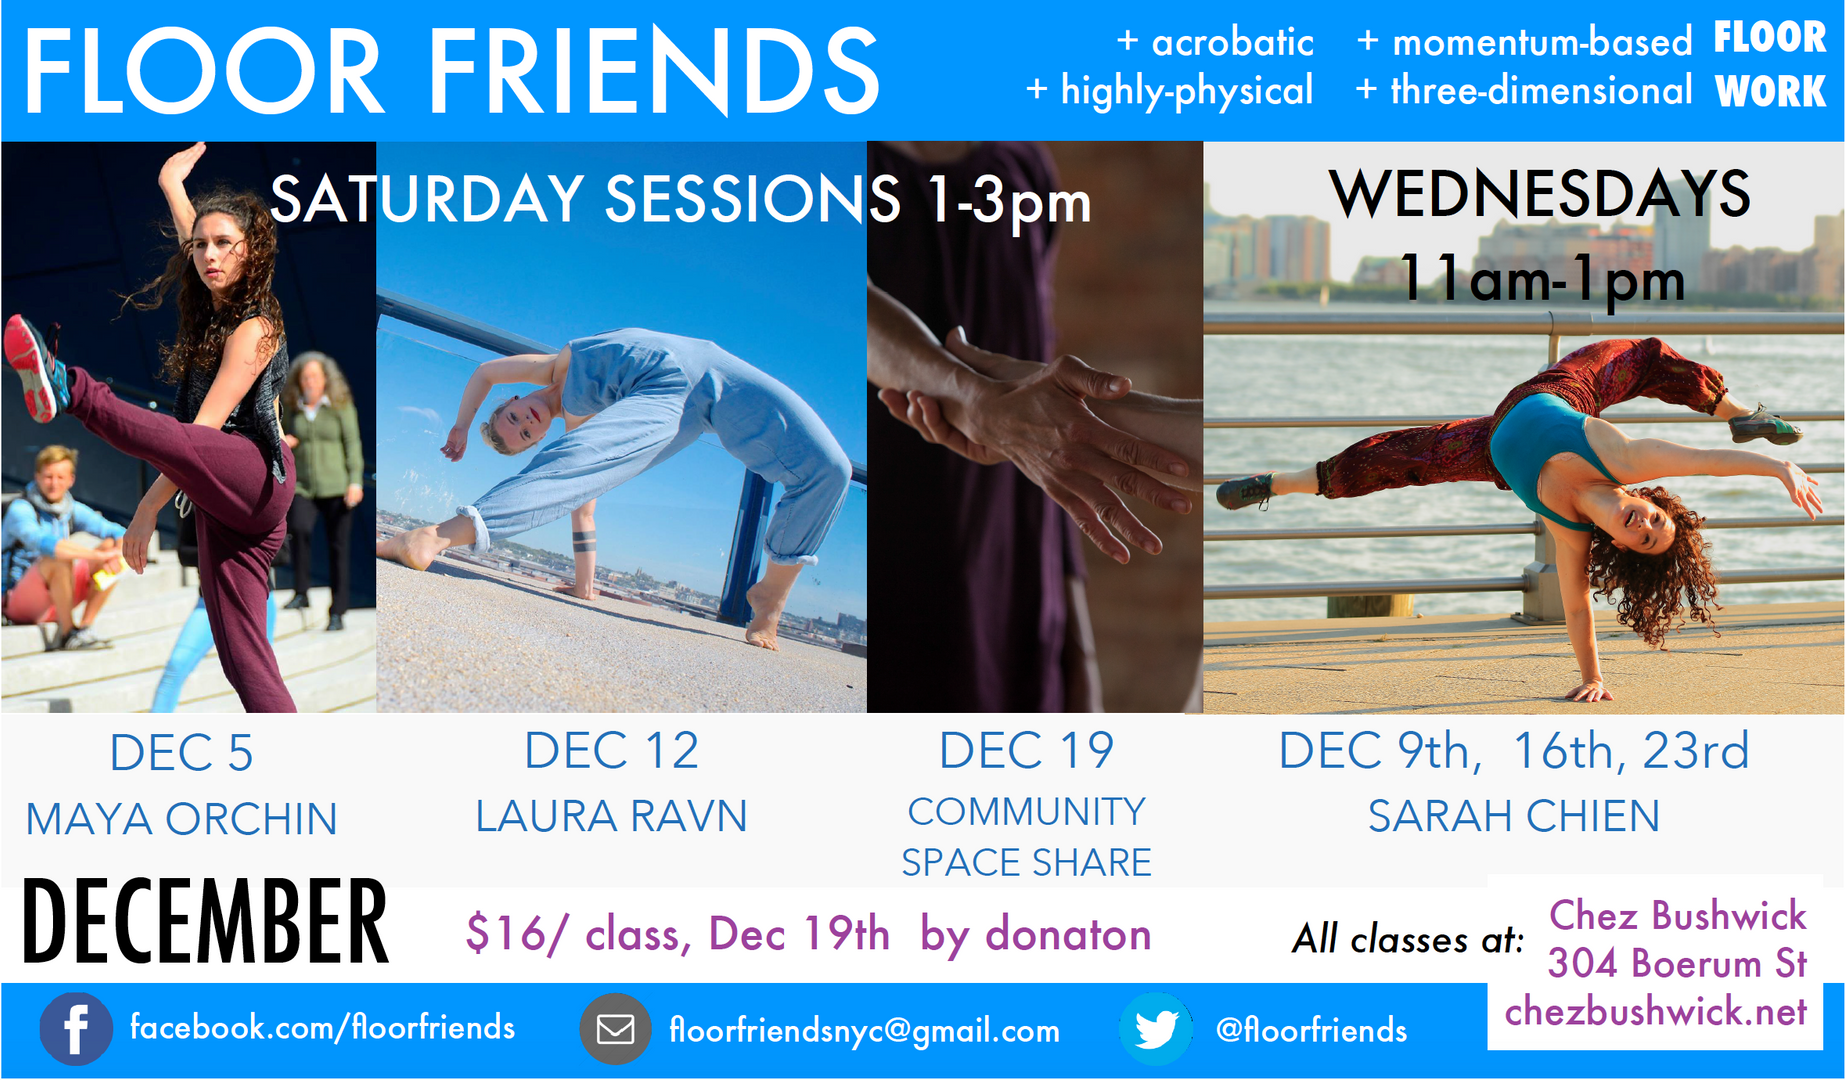 Floor Friends December 2015 flyer